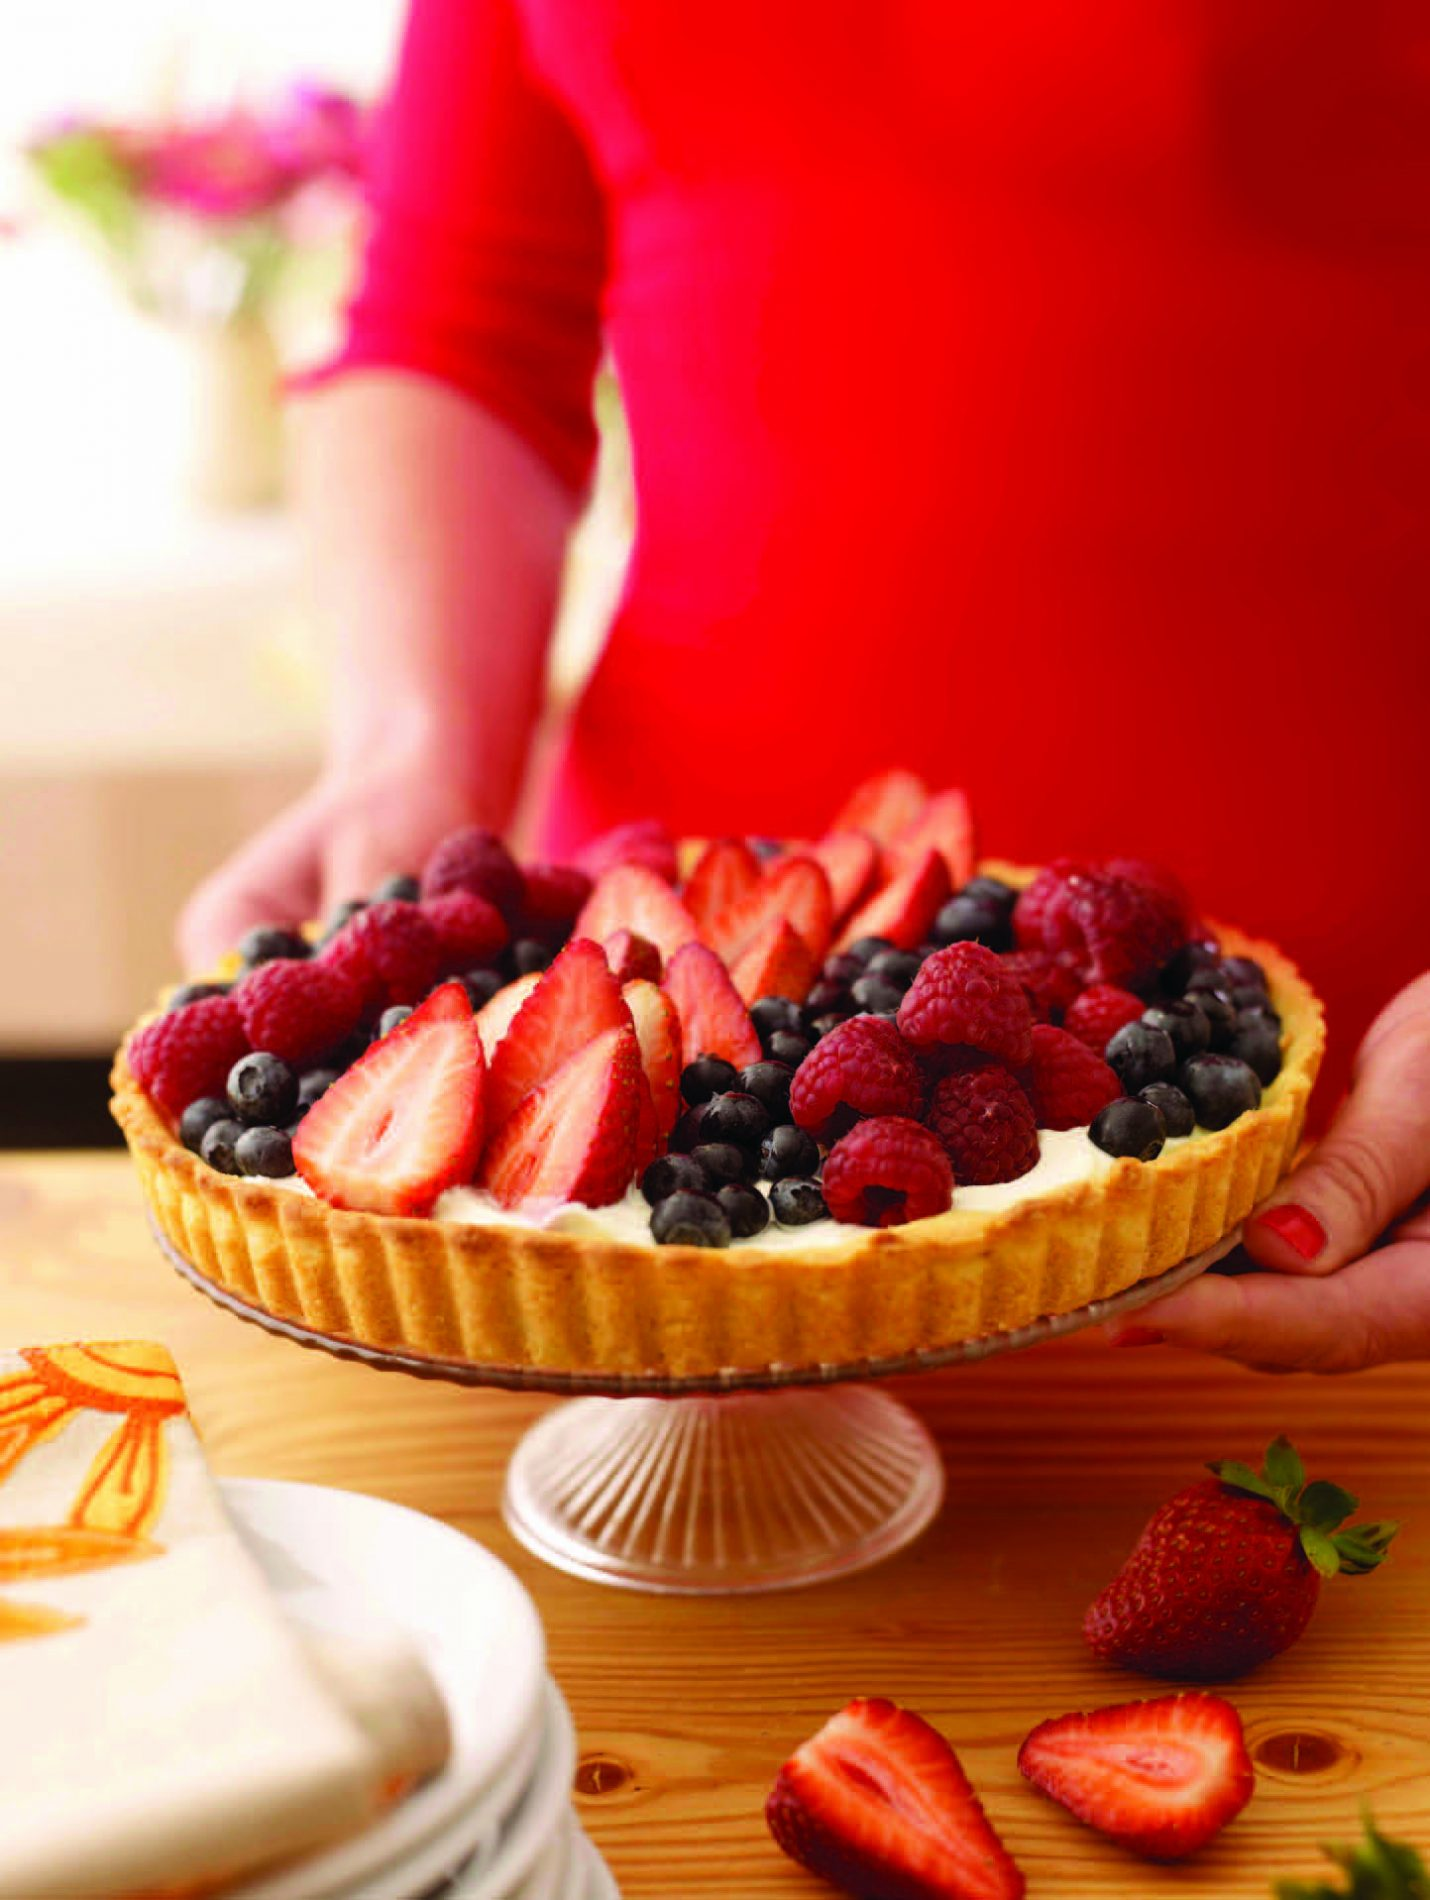 Recipe: Crostata di Frutta Fresca – FRESH FRUIT TART